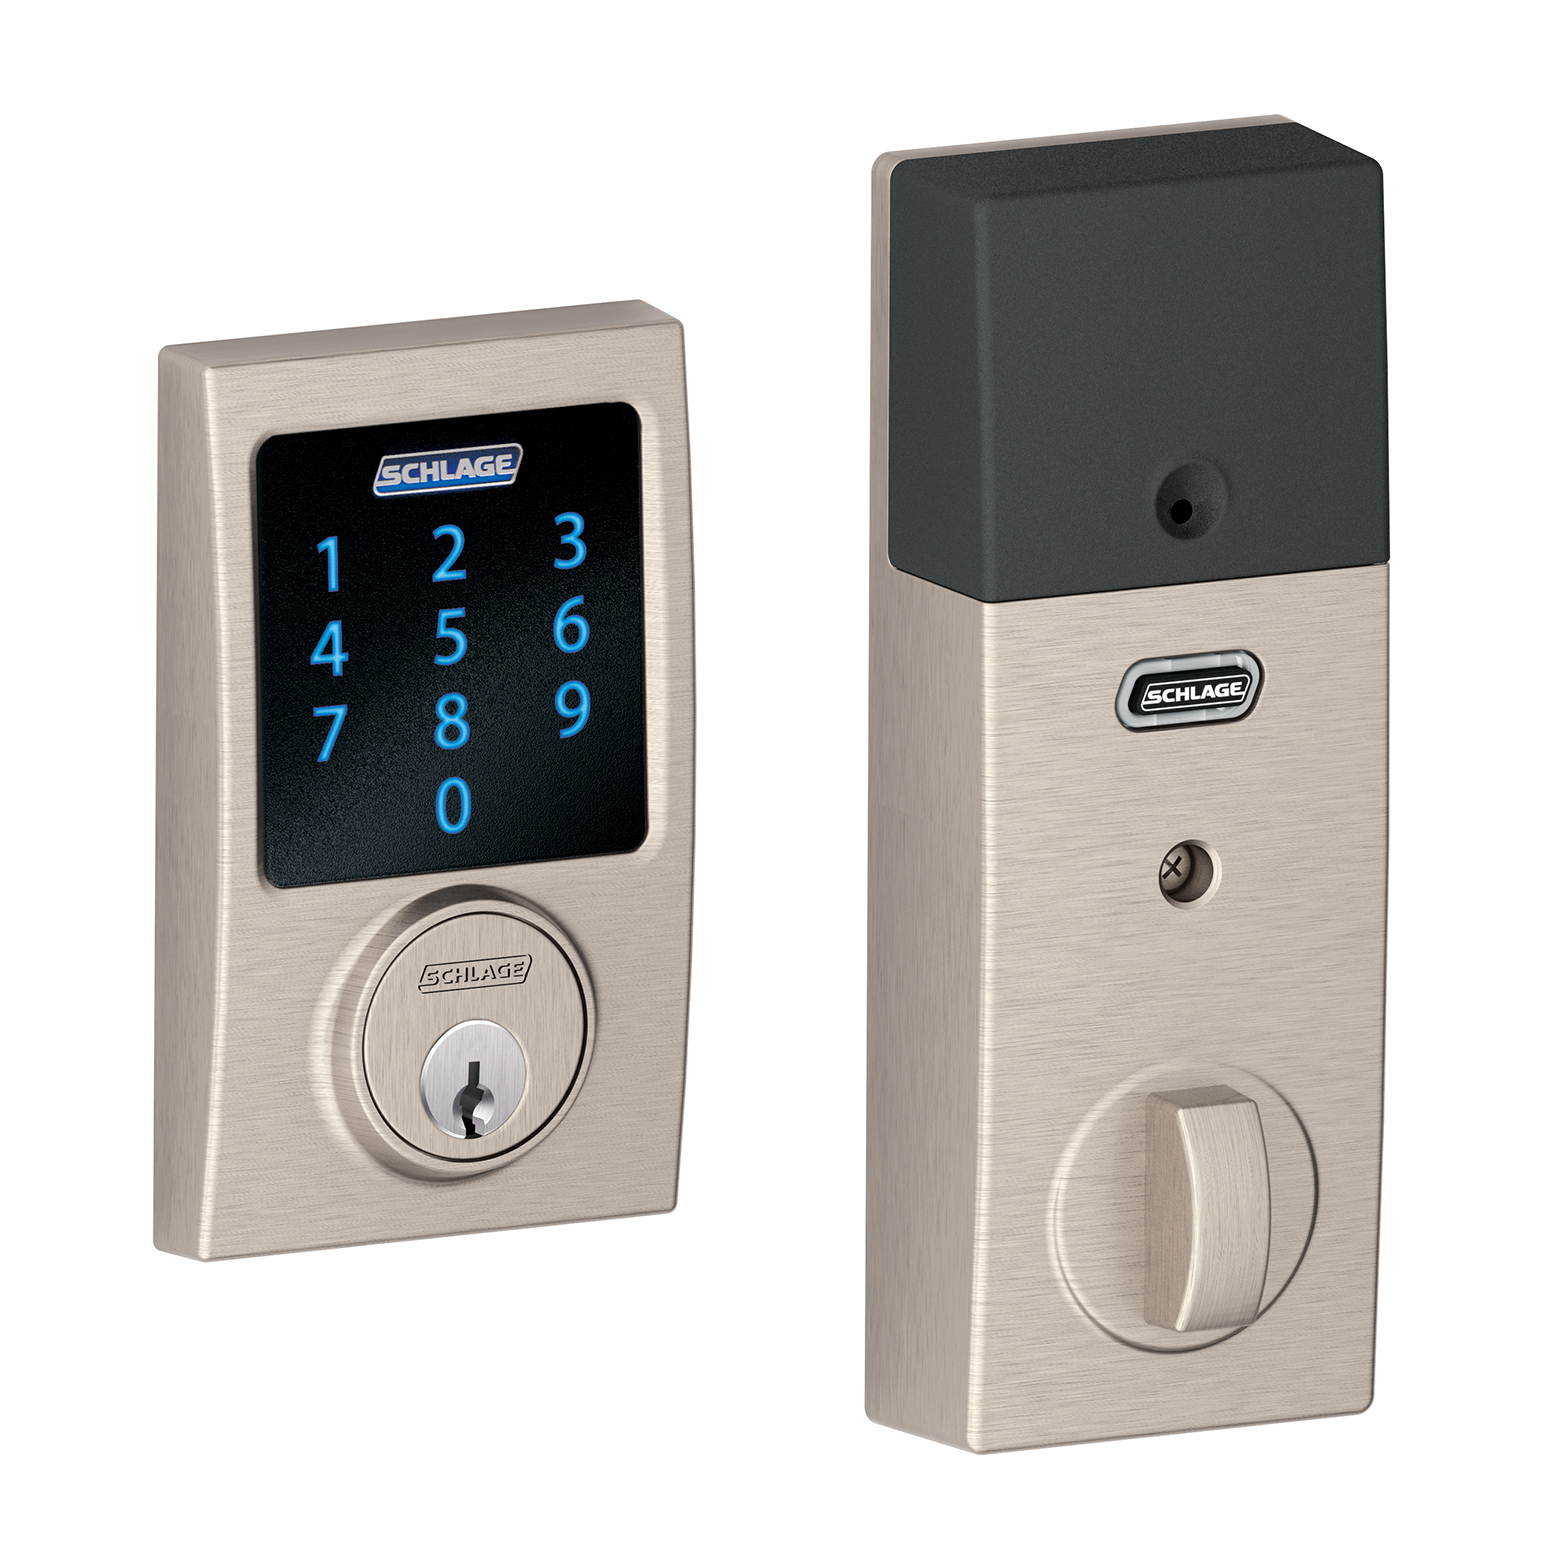 Schlage BE469VCEN619 Satin Nickel Connect Century Touchscreen Deadbolt With Built In Alarm